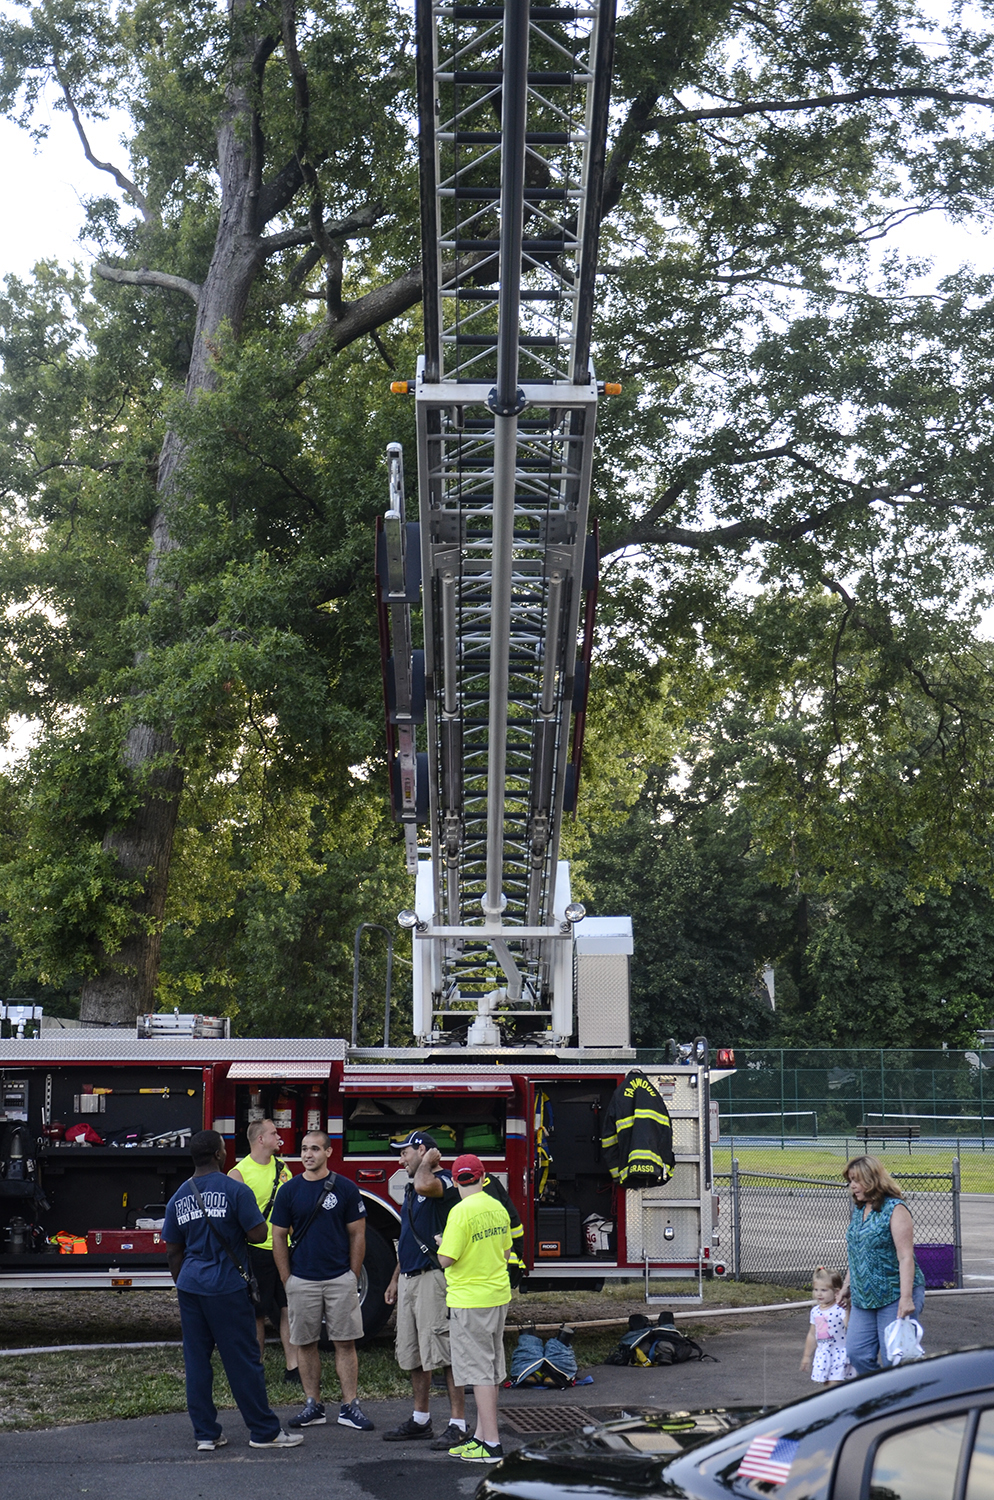 Ladder 1 with its 75' ladder extended over the crowd